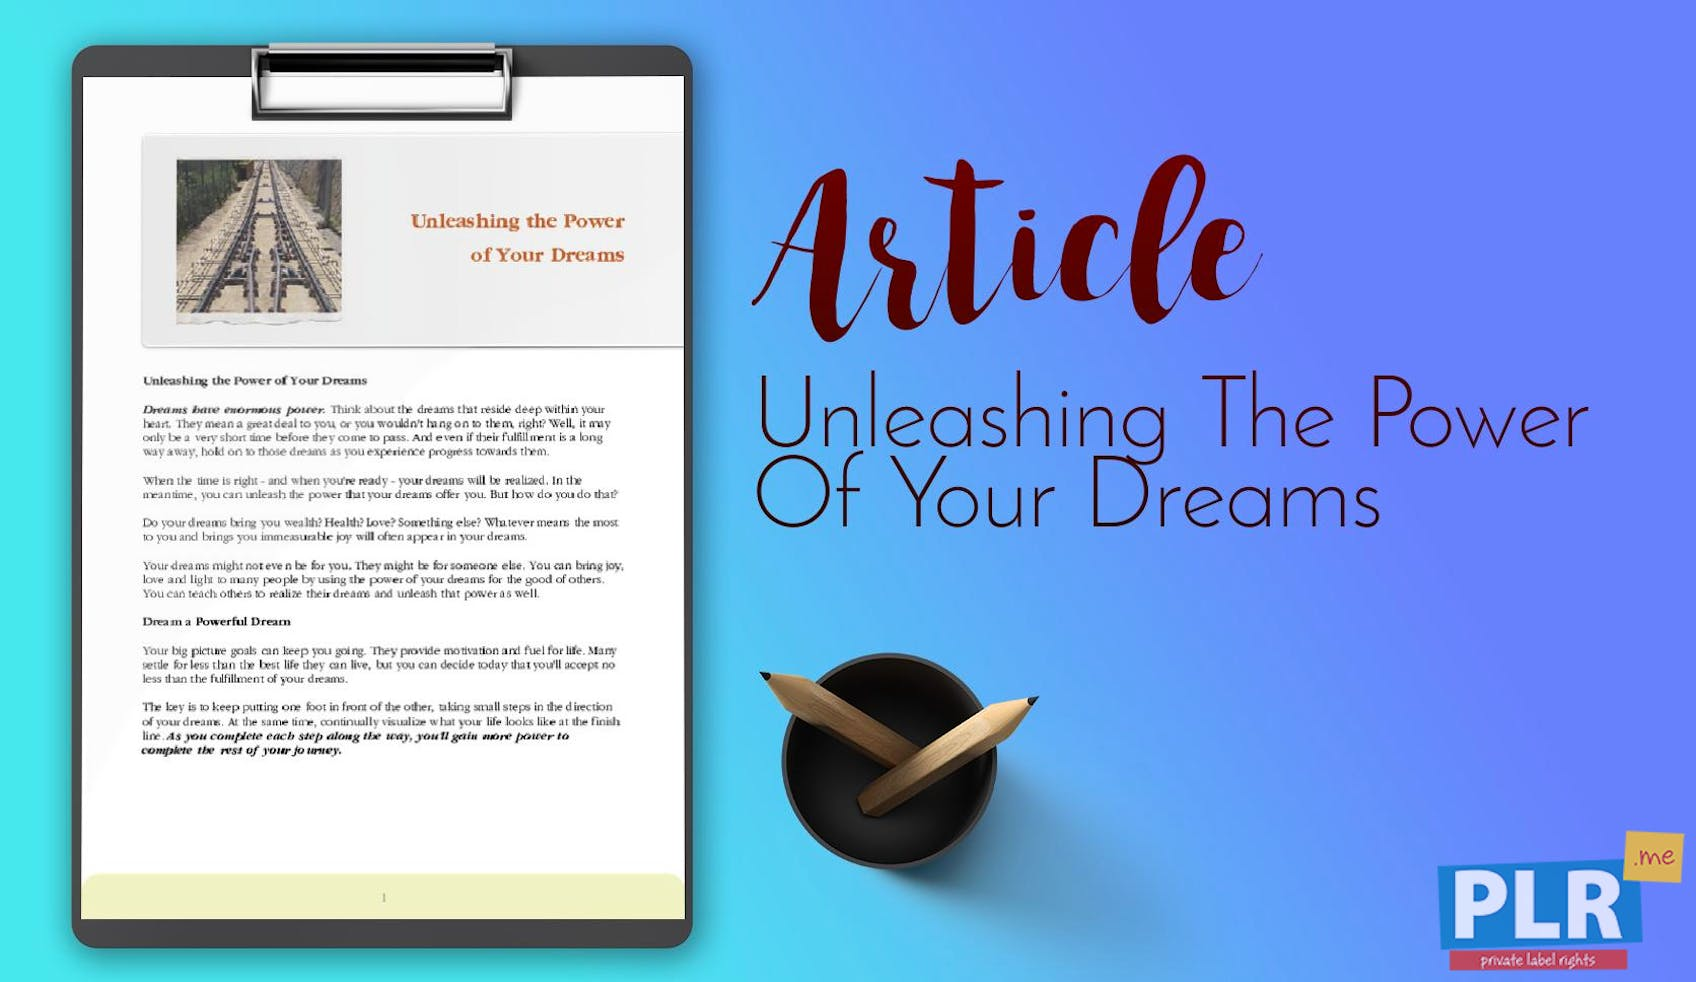 What If Our Dreams Are Right And >> Plr Articles Blog Posts Unleashing The Power Of Your Dreams Plr Me